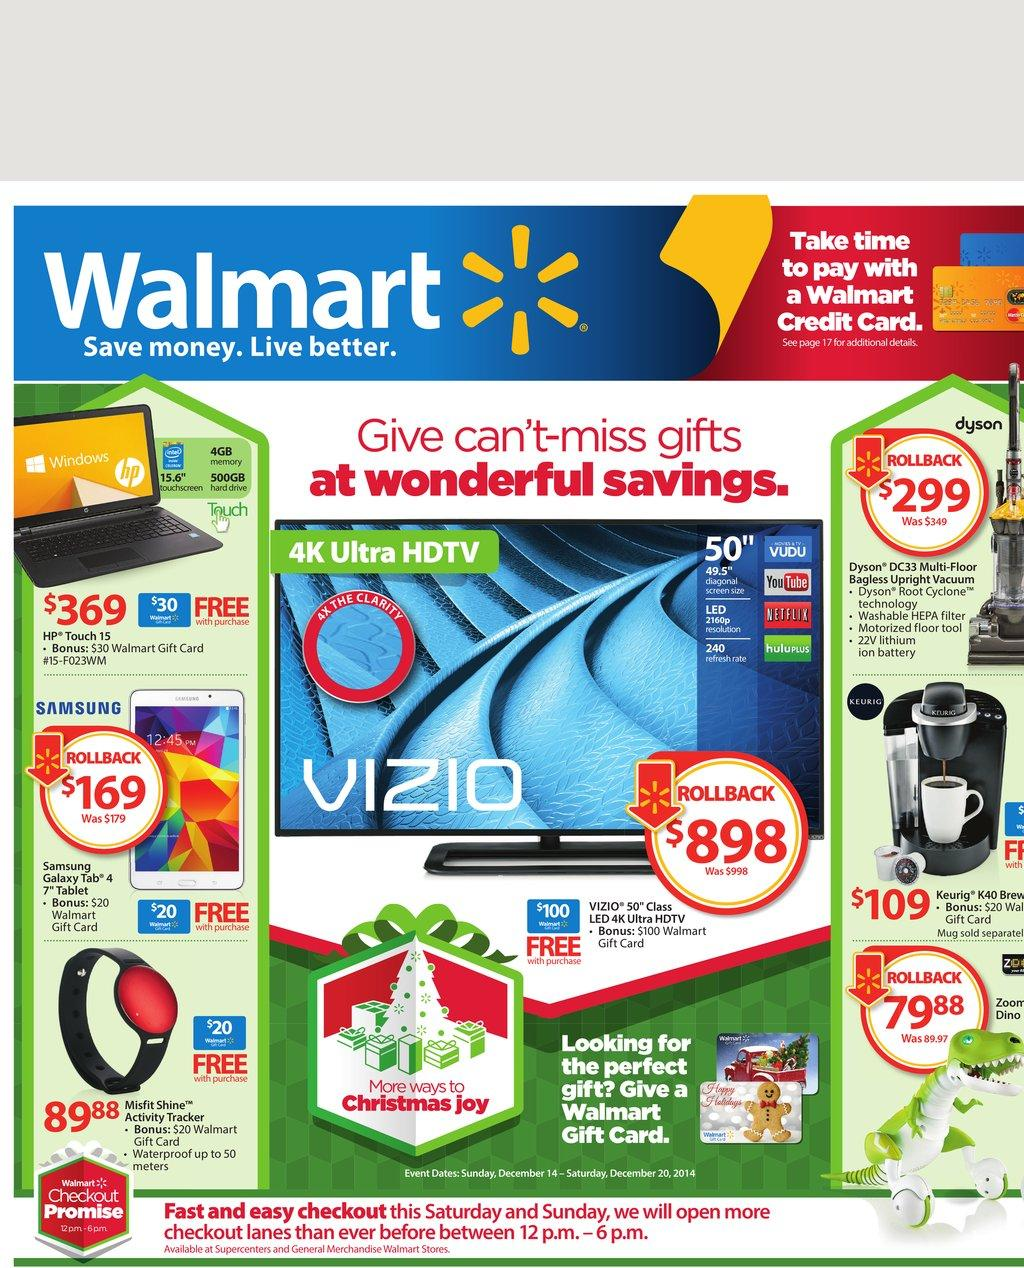 walmart weekly ads christmas gifts 2014